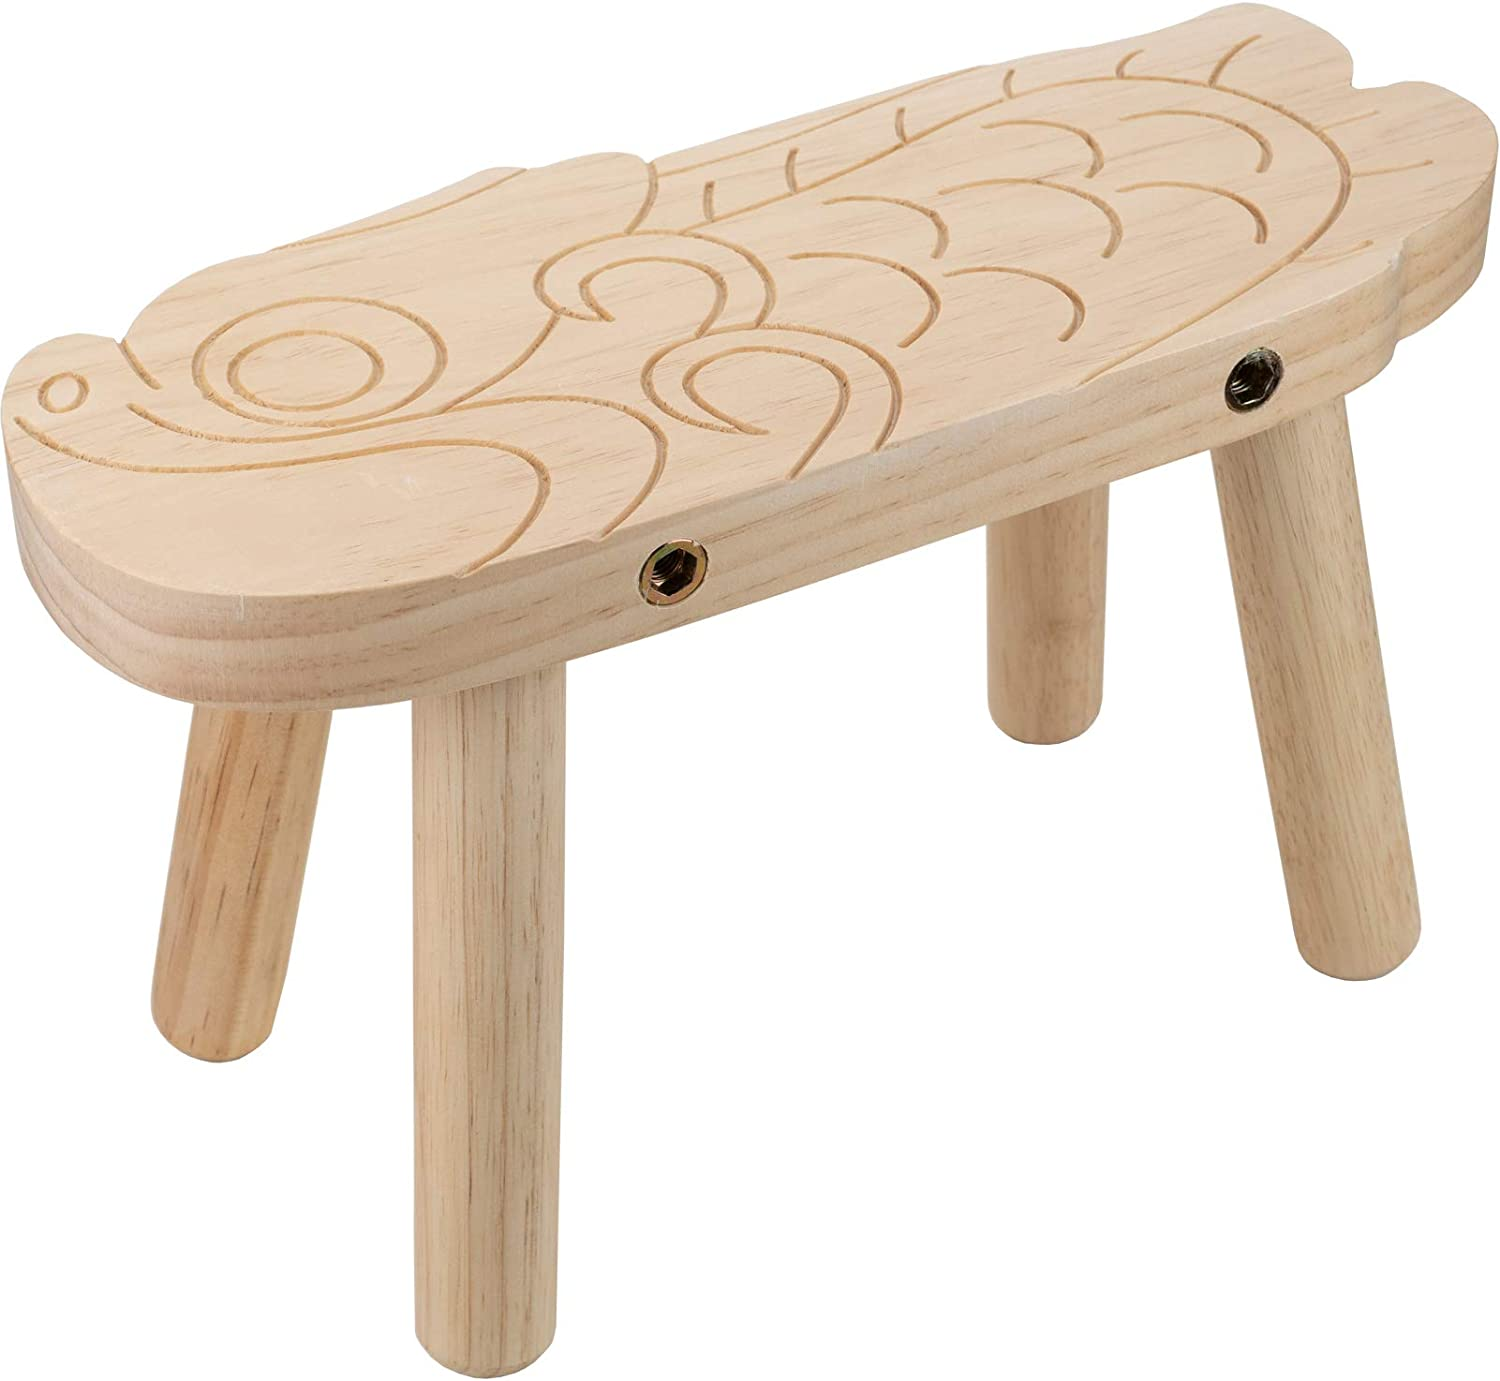 CHEFAN Wooden Stool for Kids-Toddler Stool-Personalized Furniture for Playroom-Wood Craft Project-Dorry's Journey